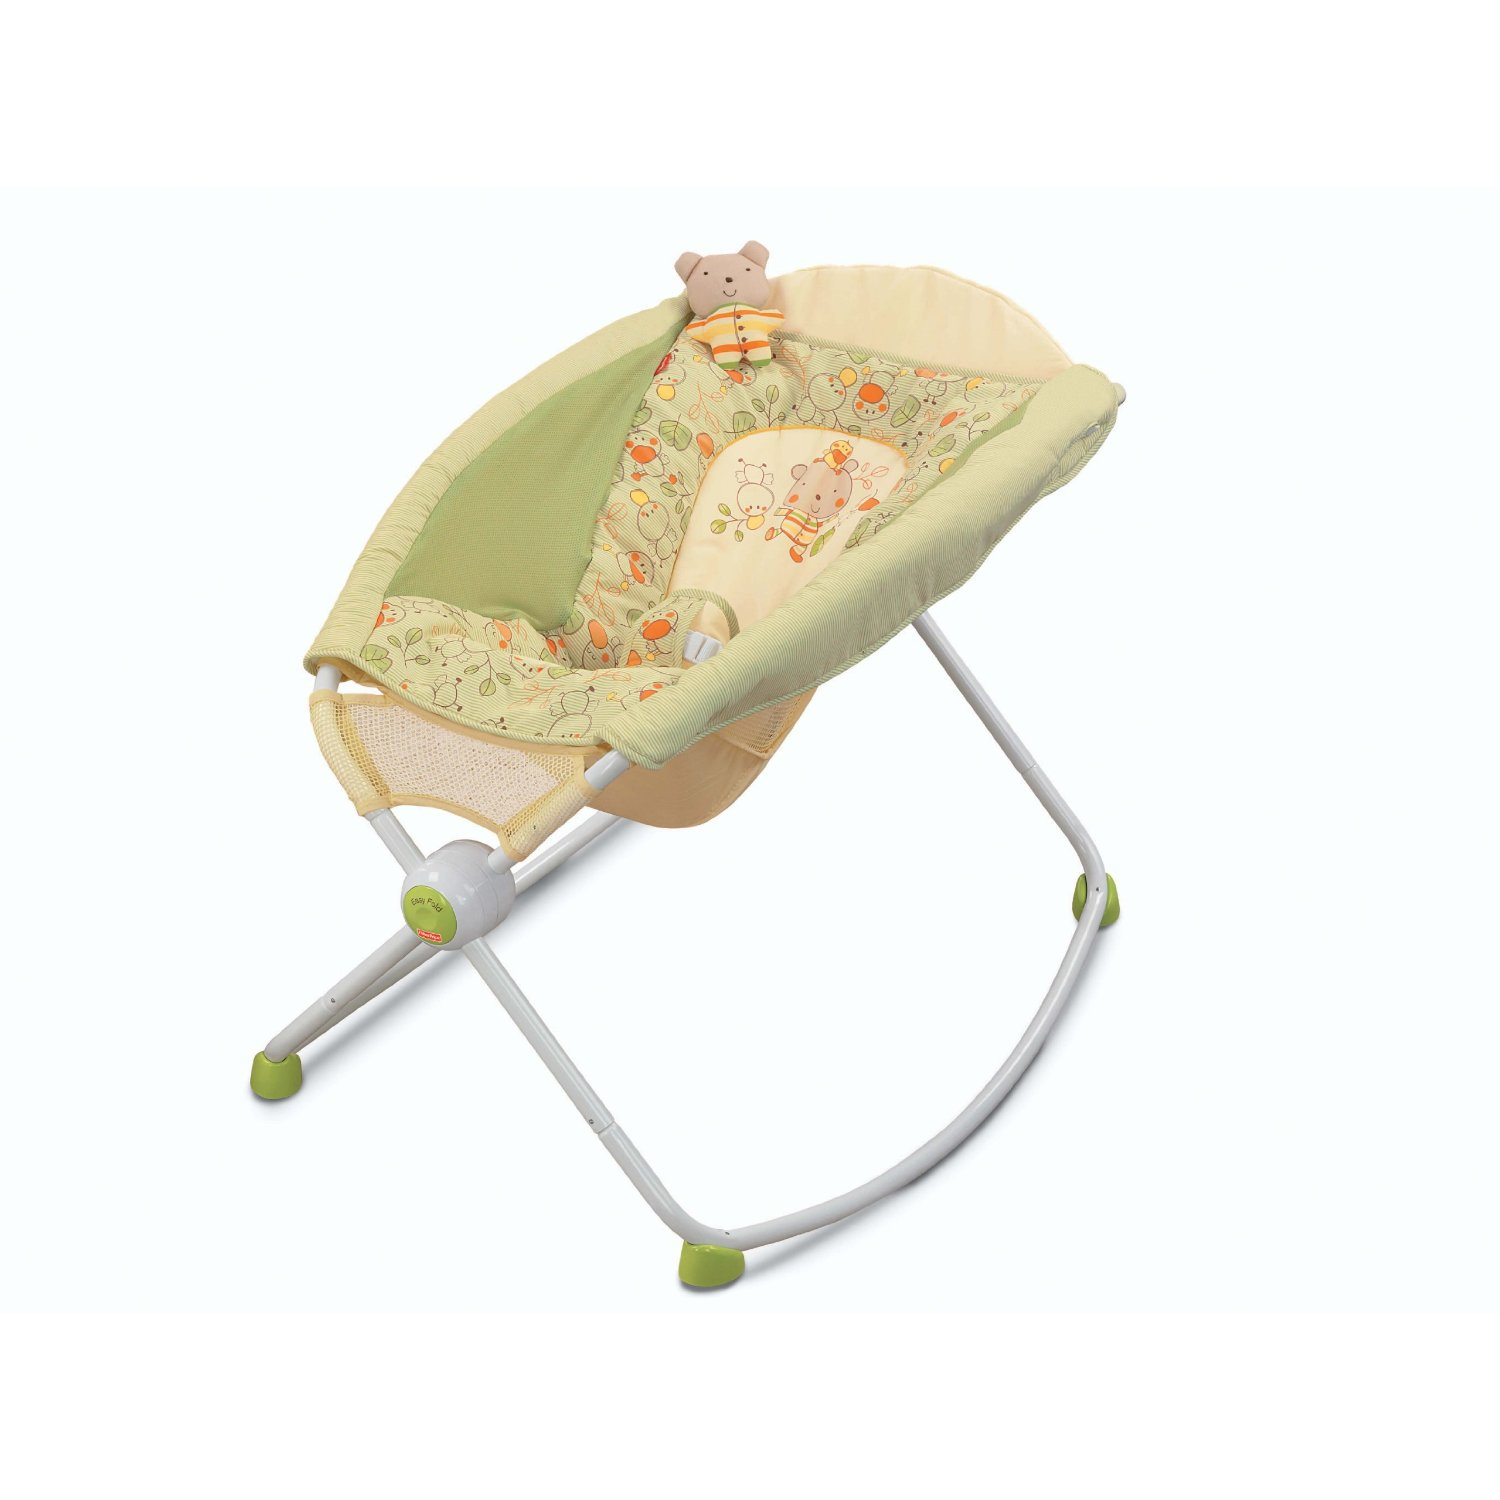 My Sister Recently Had A Baby And Bought A Portable Cradle For Her And Itu0027s  Awesome! Itu0027s The Fisher Price Newborn Rock U0027n Play Sleeper And It Costs  Around ...